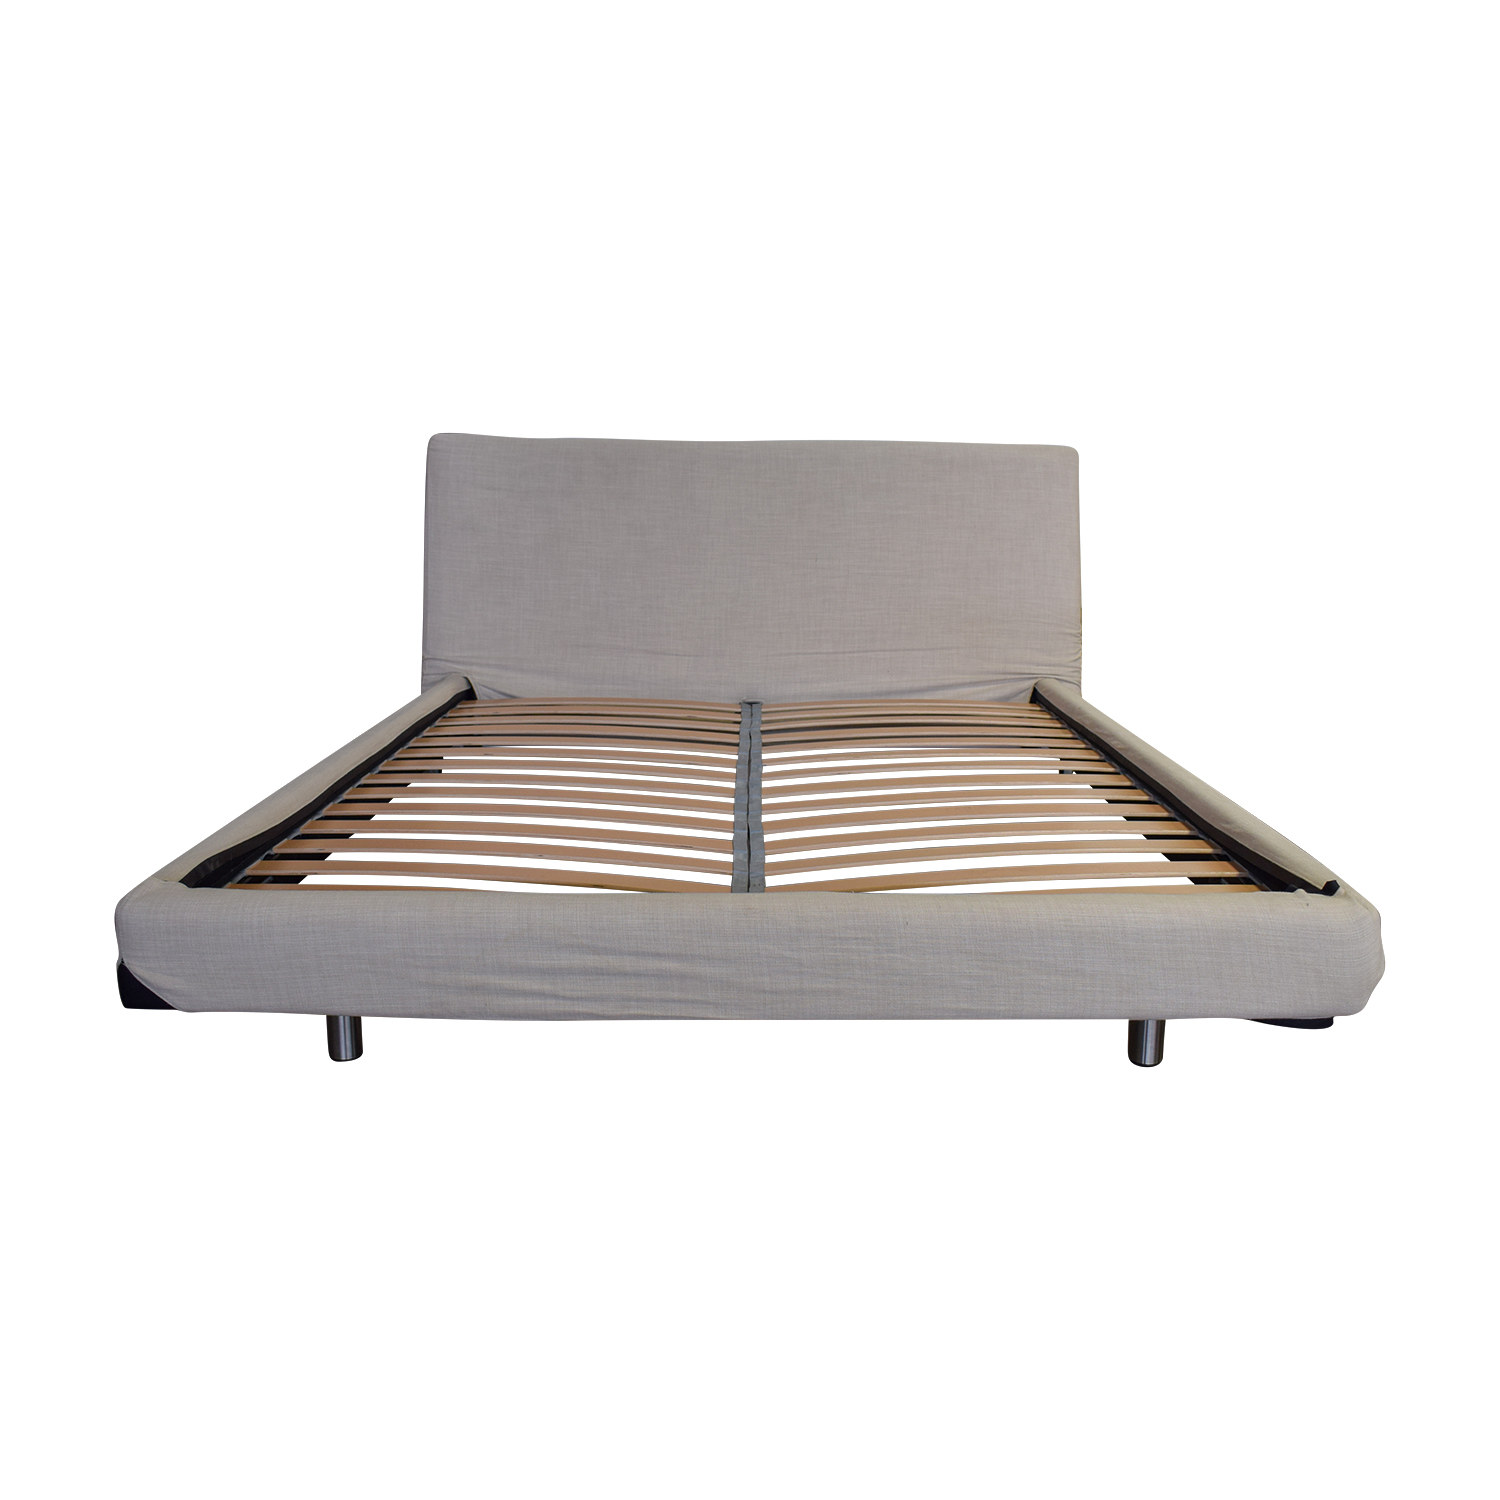 Design Within Reach Design Within Reach Reve Oatmeal Fabric Platform Queen Bed Frame nj